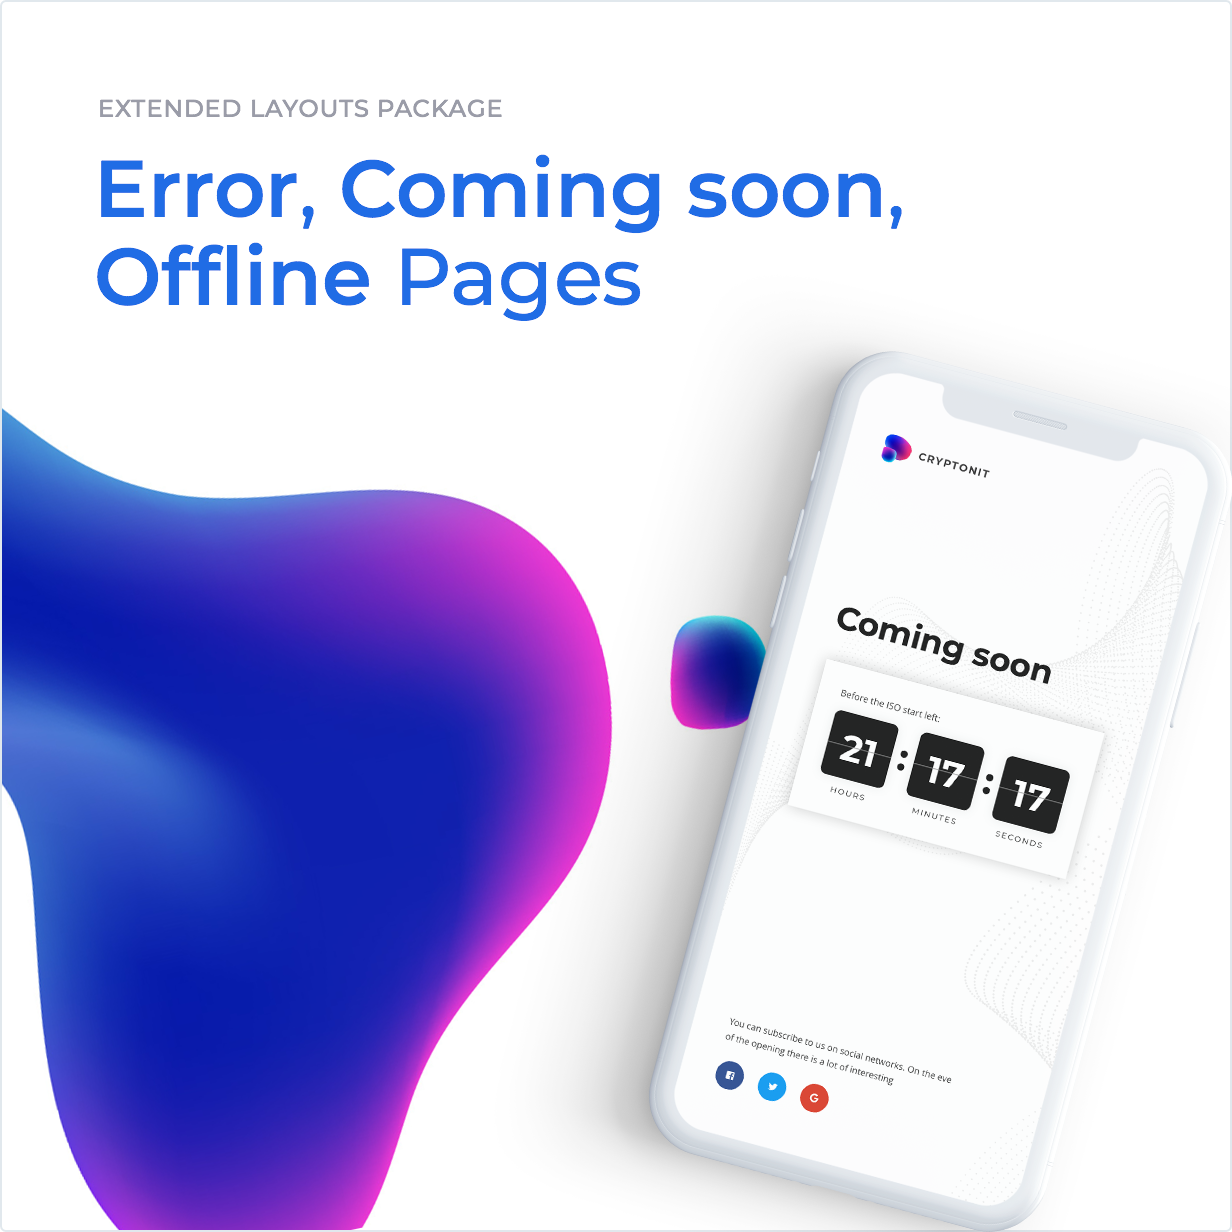 Extended layouts package: Error, Coming soon, Offline Pages